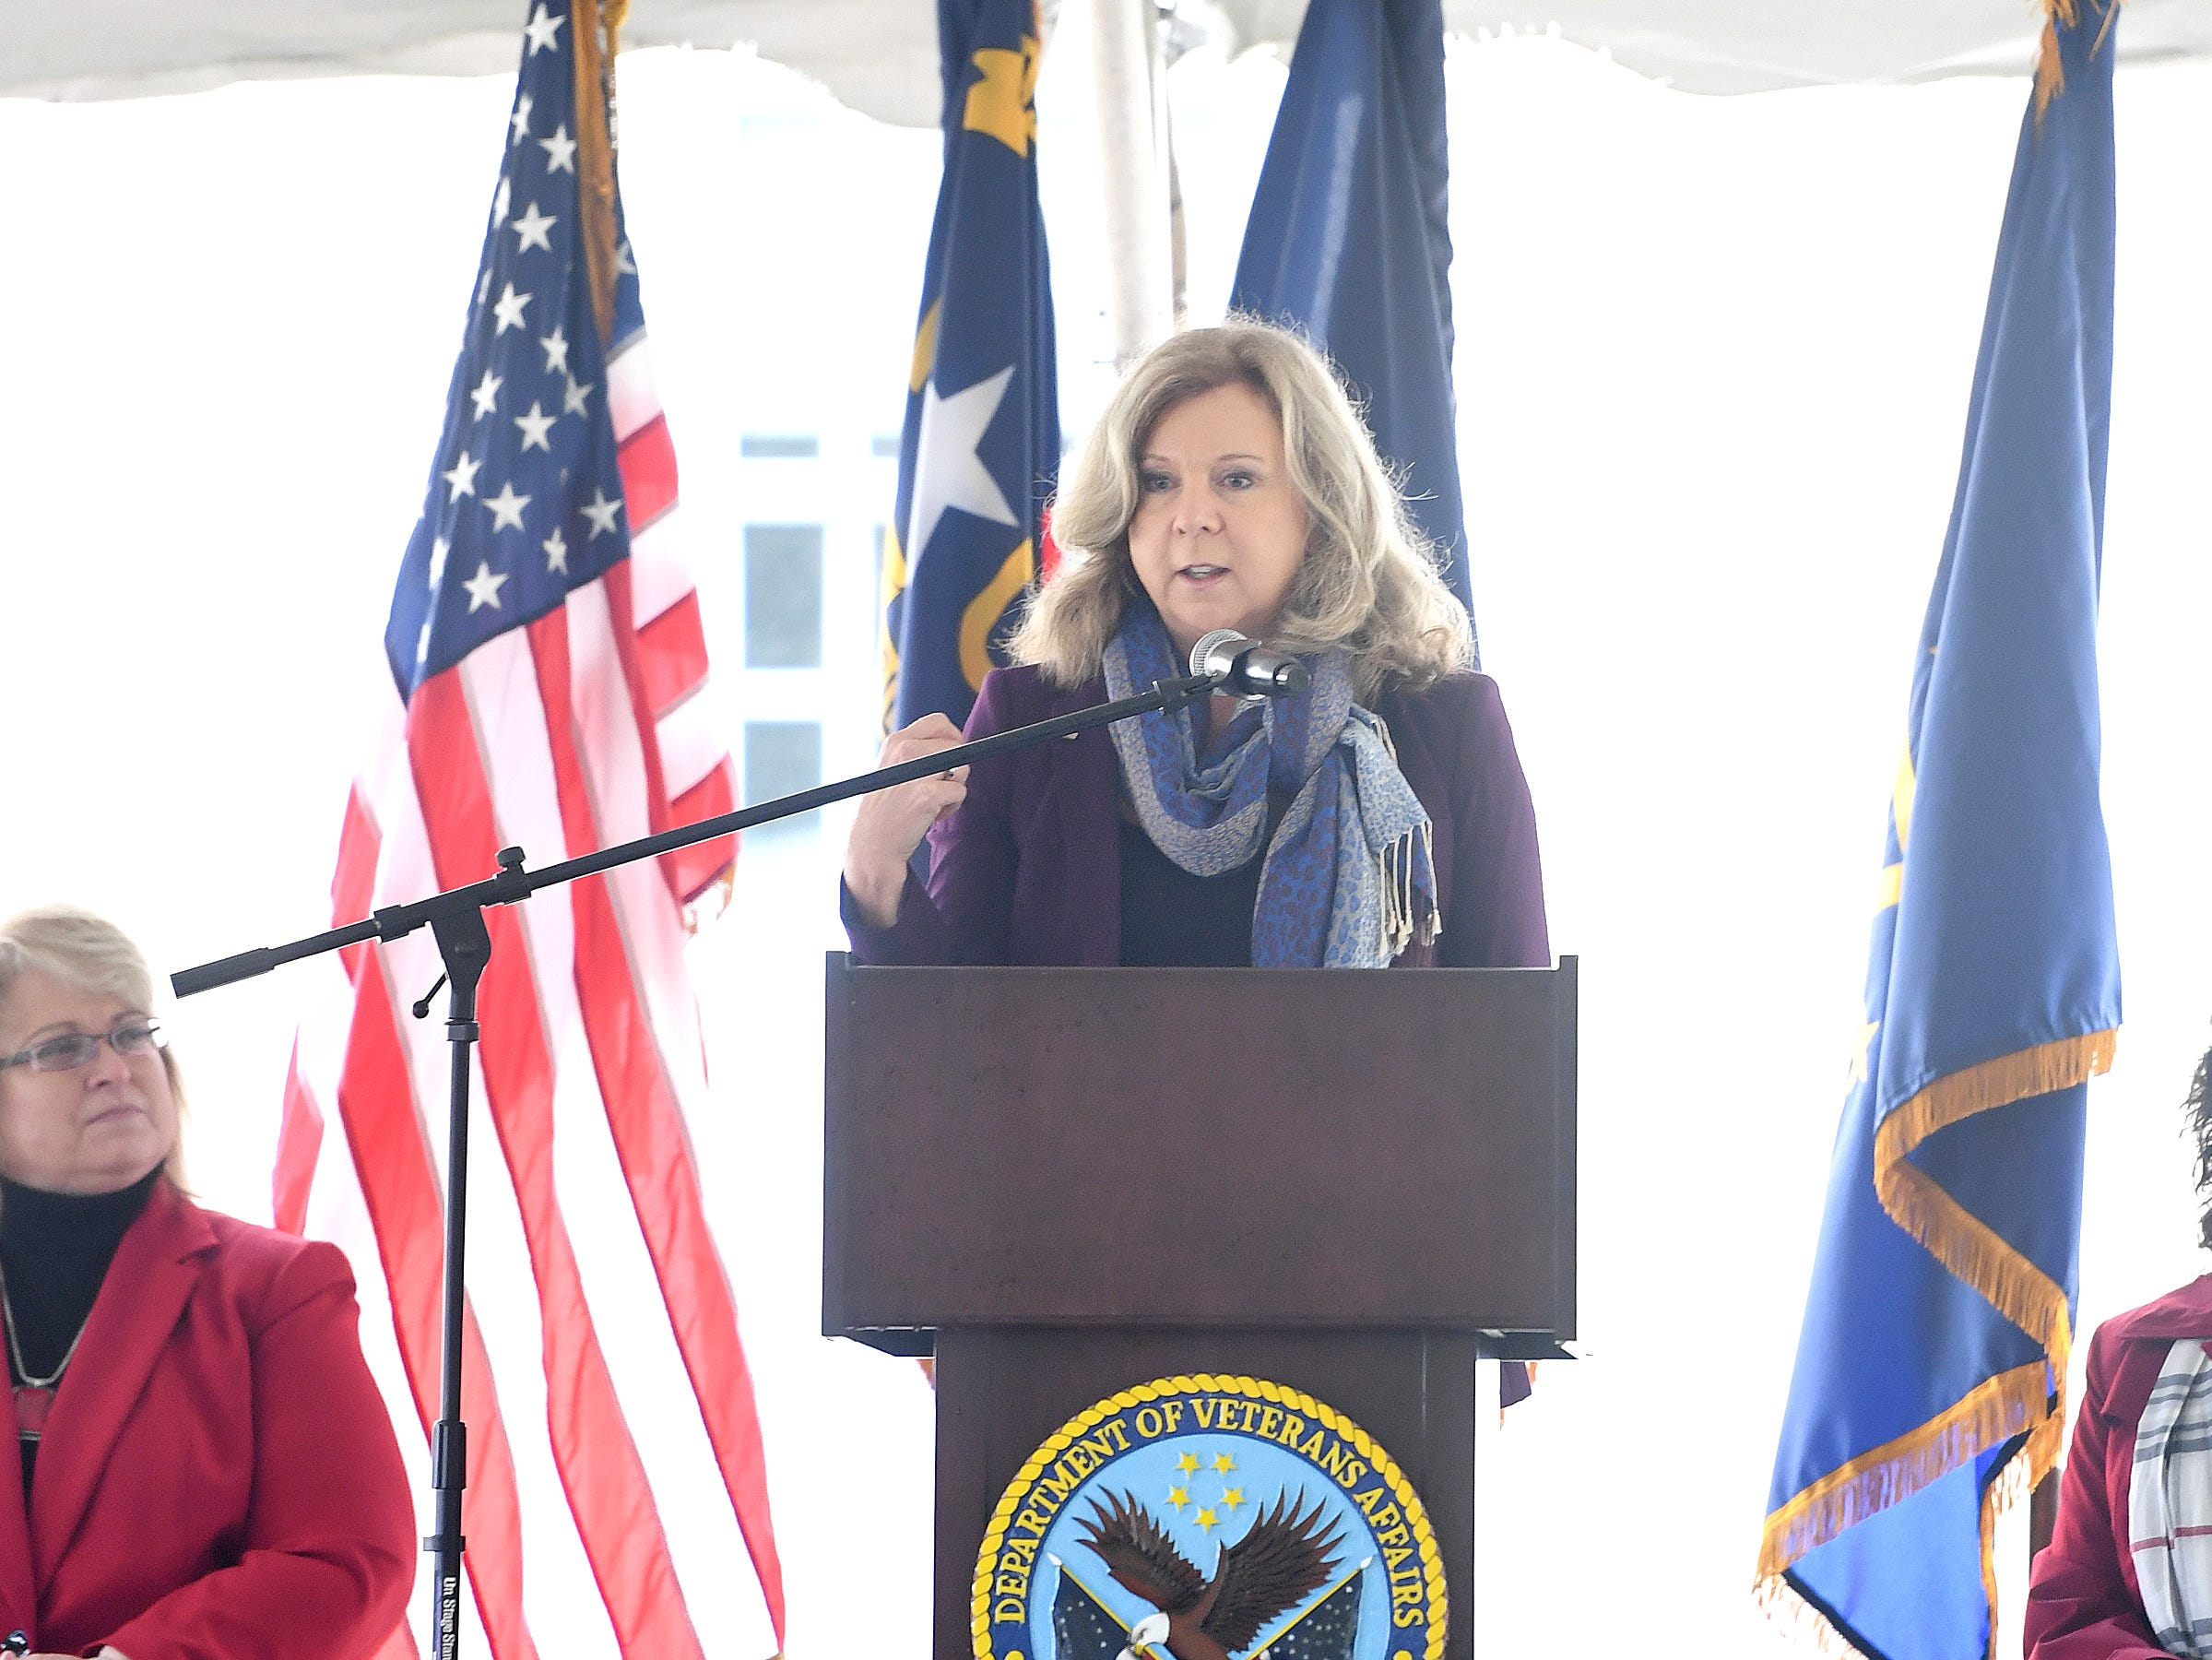 DeAnne Seekins, director of the VA Mid-Atlantic Healthcare Network, VISN 6, gives remarks during a ceremony celebrating the opening of the Veterans Hope and Recovery Center on the campus of the Charles George VA Medical Center on Oct. 26, 2018.